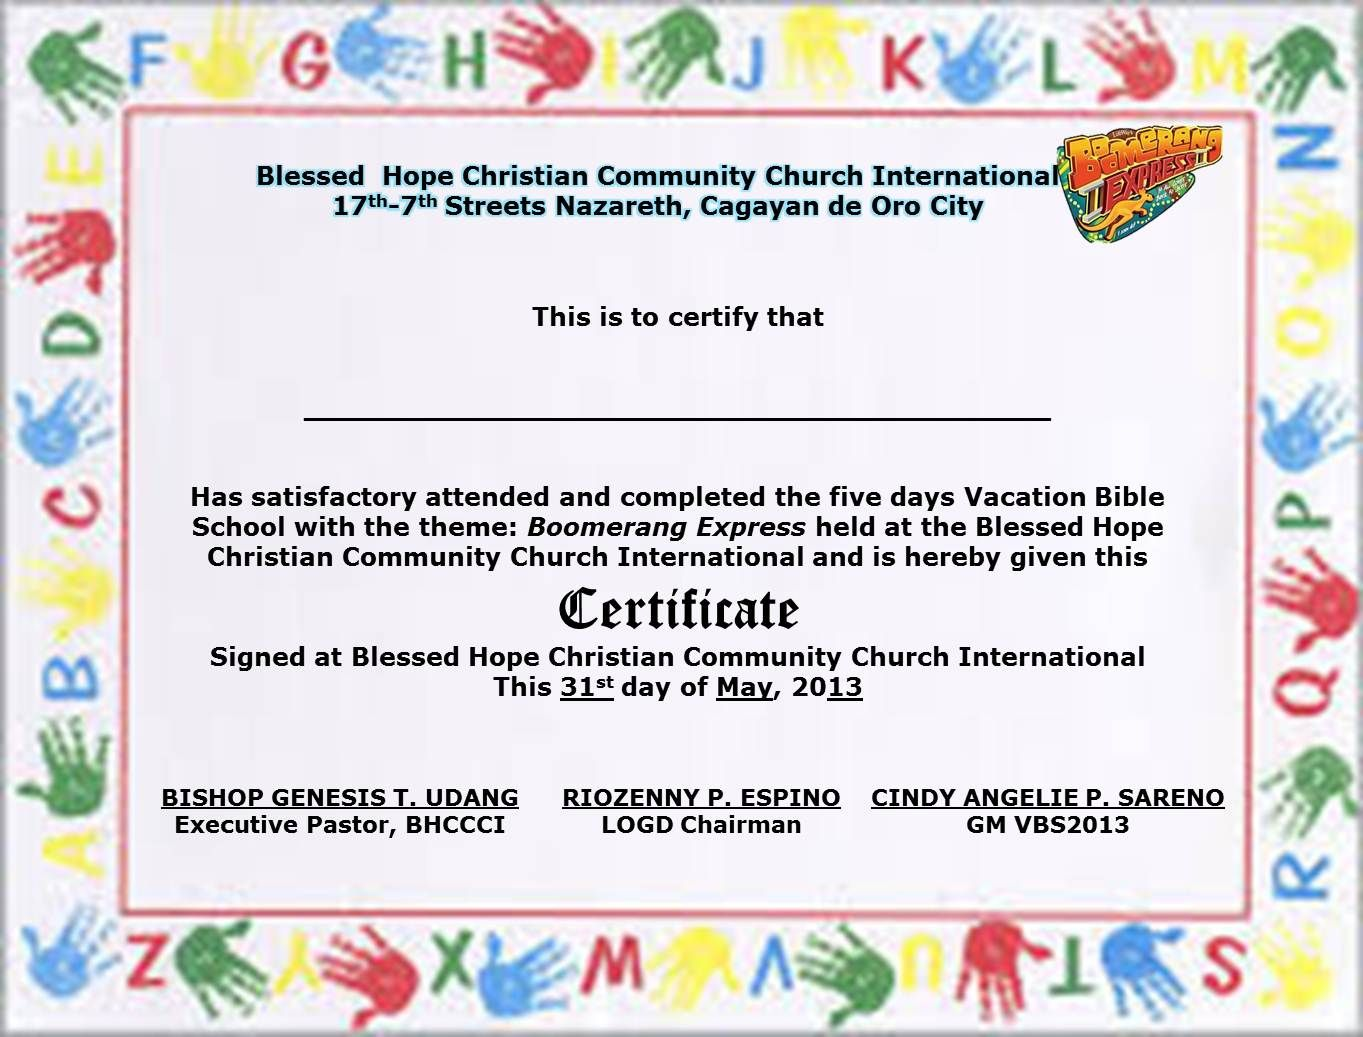 School certificate samples sign in sheets for employees for sale school certificate samples sign in sheets for employees for sale 1betcityfo Images